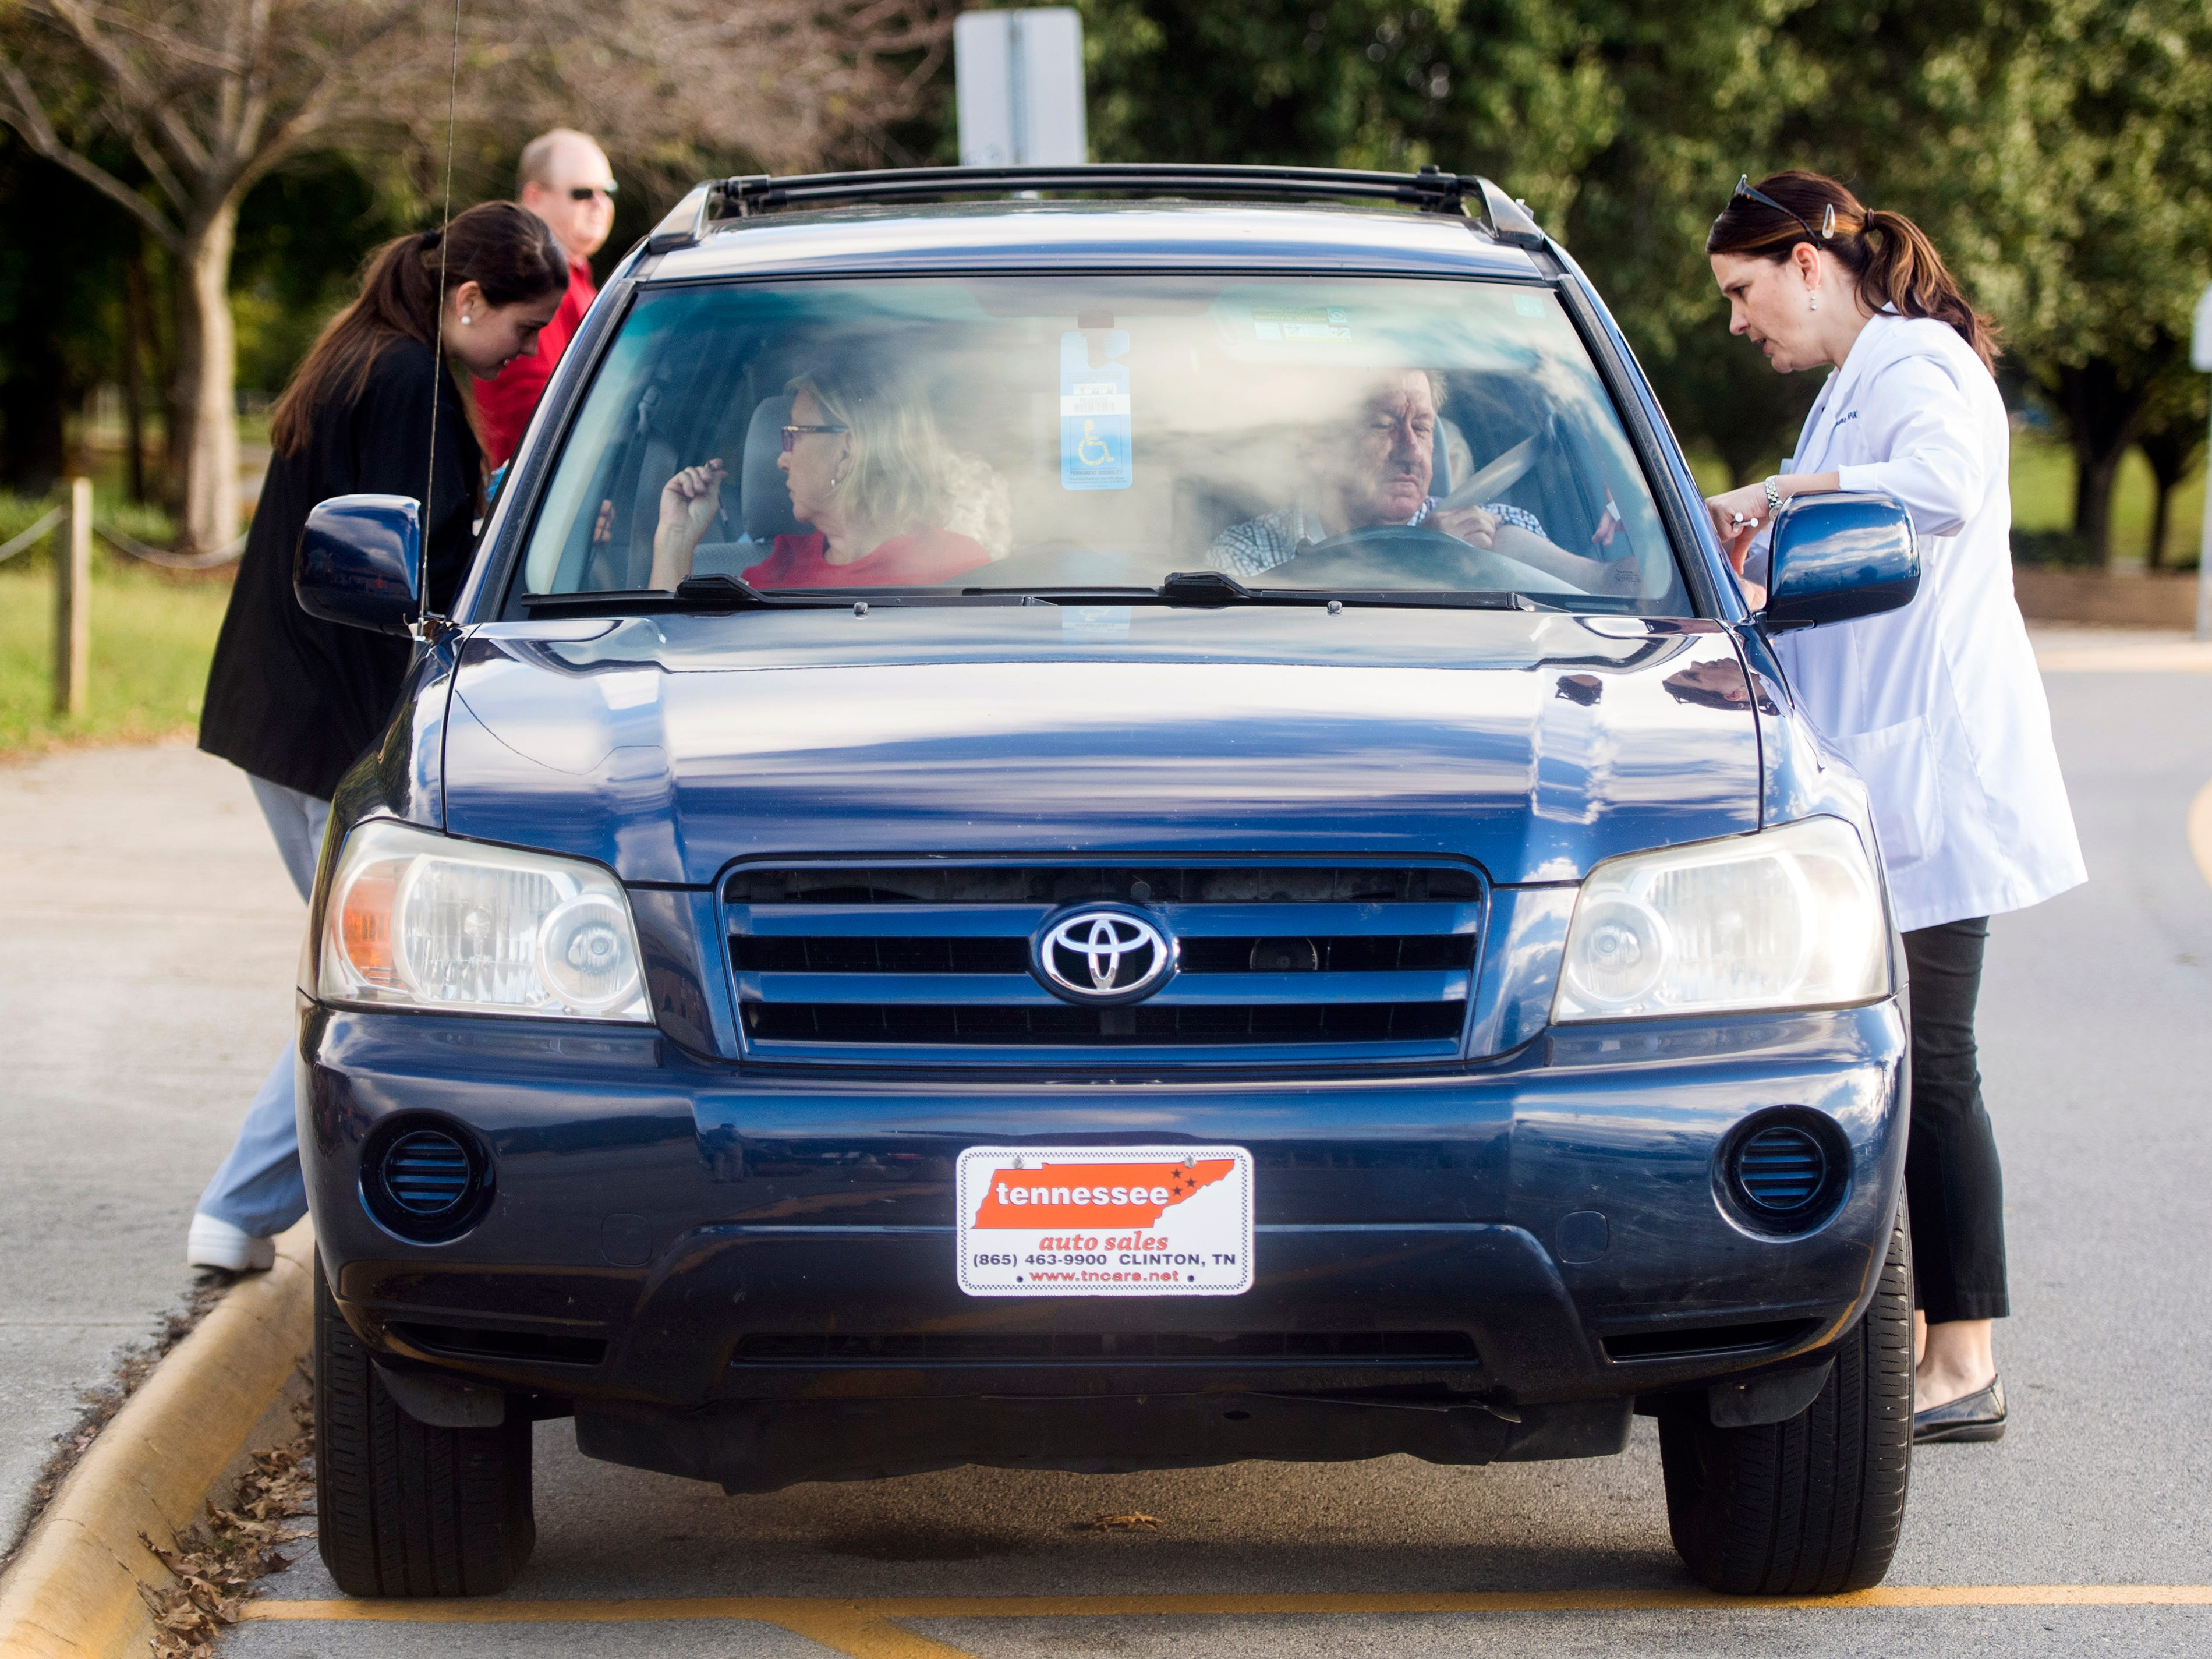 University of Tennessee nursing student Kathryn Rack, left, and UT clinical instructor Erin Morgan, right, administer flu shots in a drive thru fashion for people unable to get out of their cars at Farragut High School during Free Flu Shot Saturday on Saturday, October 12, 2018.